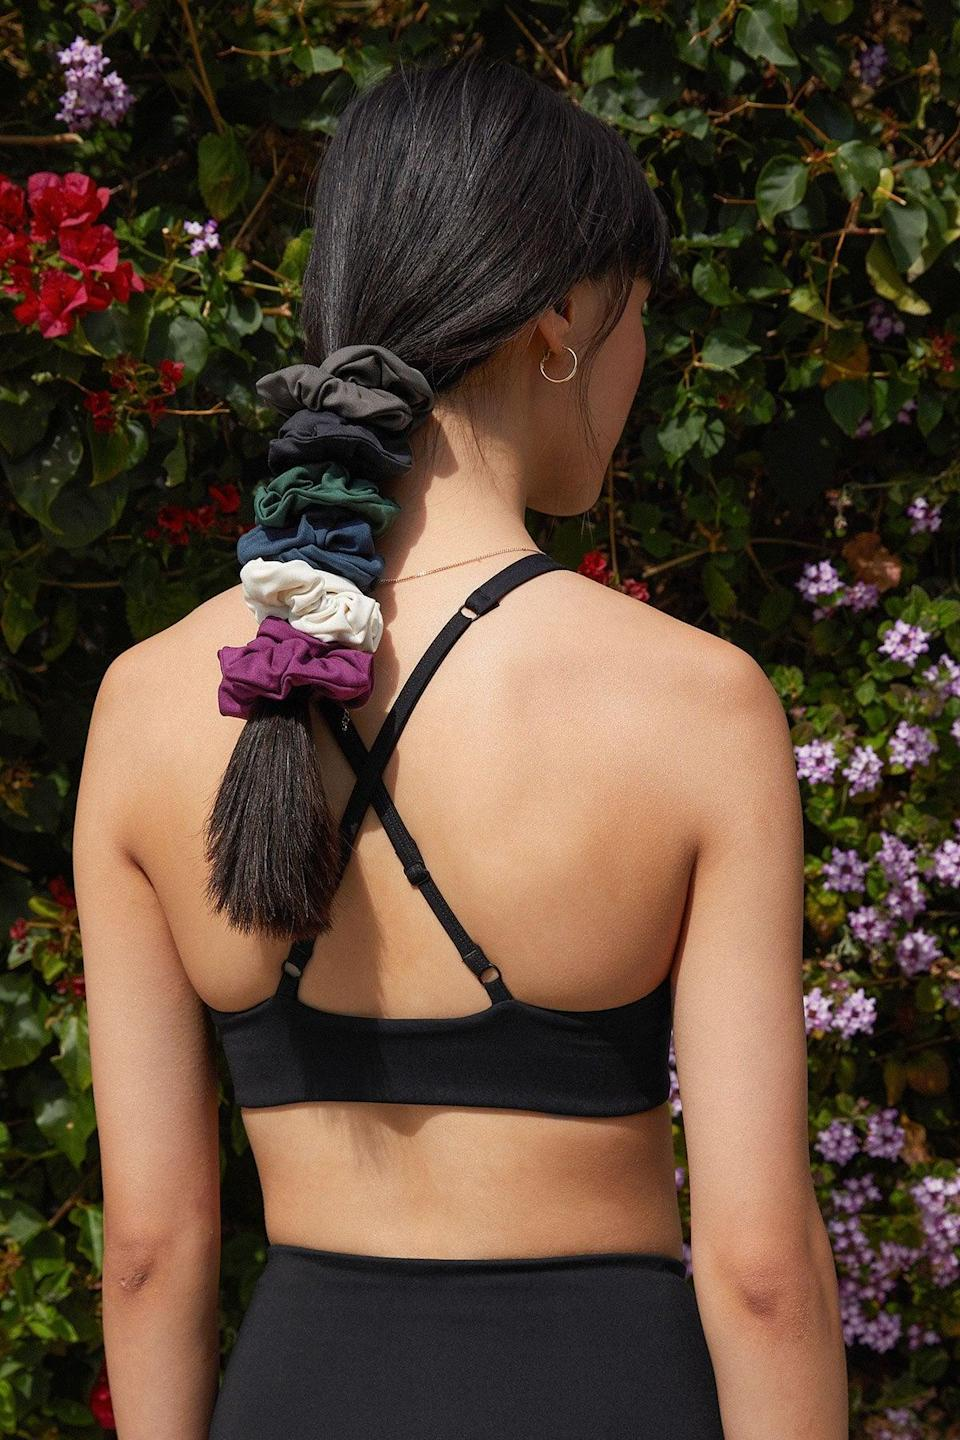 """<p>I'm someone who works out frequently, and the two essentials I need for any great sweat session are a supportive sports bra and a great hair tie. I don't want a regular rubber band because it bends my hair and just isn't a great way to preserve my hair's health, but all the scrunchies I've tried never seem to stay put. That is, until I tried the <span>Girlfriend Collective Scrunchies</span> ($6). It's tight enough to survive my toughest workouts, but there are no bumps or bends in my hair. Plus, the fabric is moisture-wicking, which is perfect for a sweat session. After searching for what feels like forever, I found my perfect hair tie, and if you're as active as I am, you need one too."""" - IY</p> <p>Read the full <a href=""""https://www.popsugar.com/fitness/girlfriend-collective-scrunchie-review-47748860"""" class=""""link rapid-noclick-resp"""" rel=""""nofollow noopener"""" target=""""_blank"""" data-ylk=""""slk:Girlfriend Collective Scrunchie review"""">Girlfriend Collective Scrunchie review</a>.</p>"""